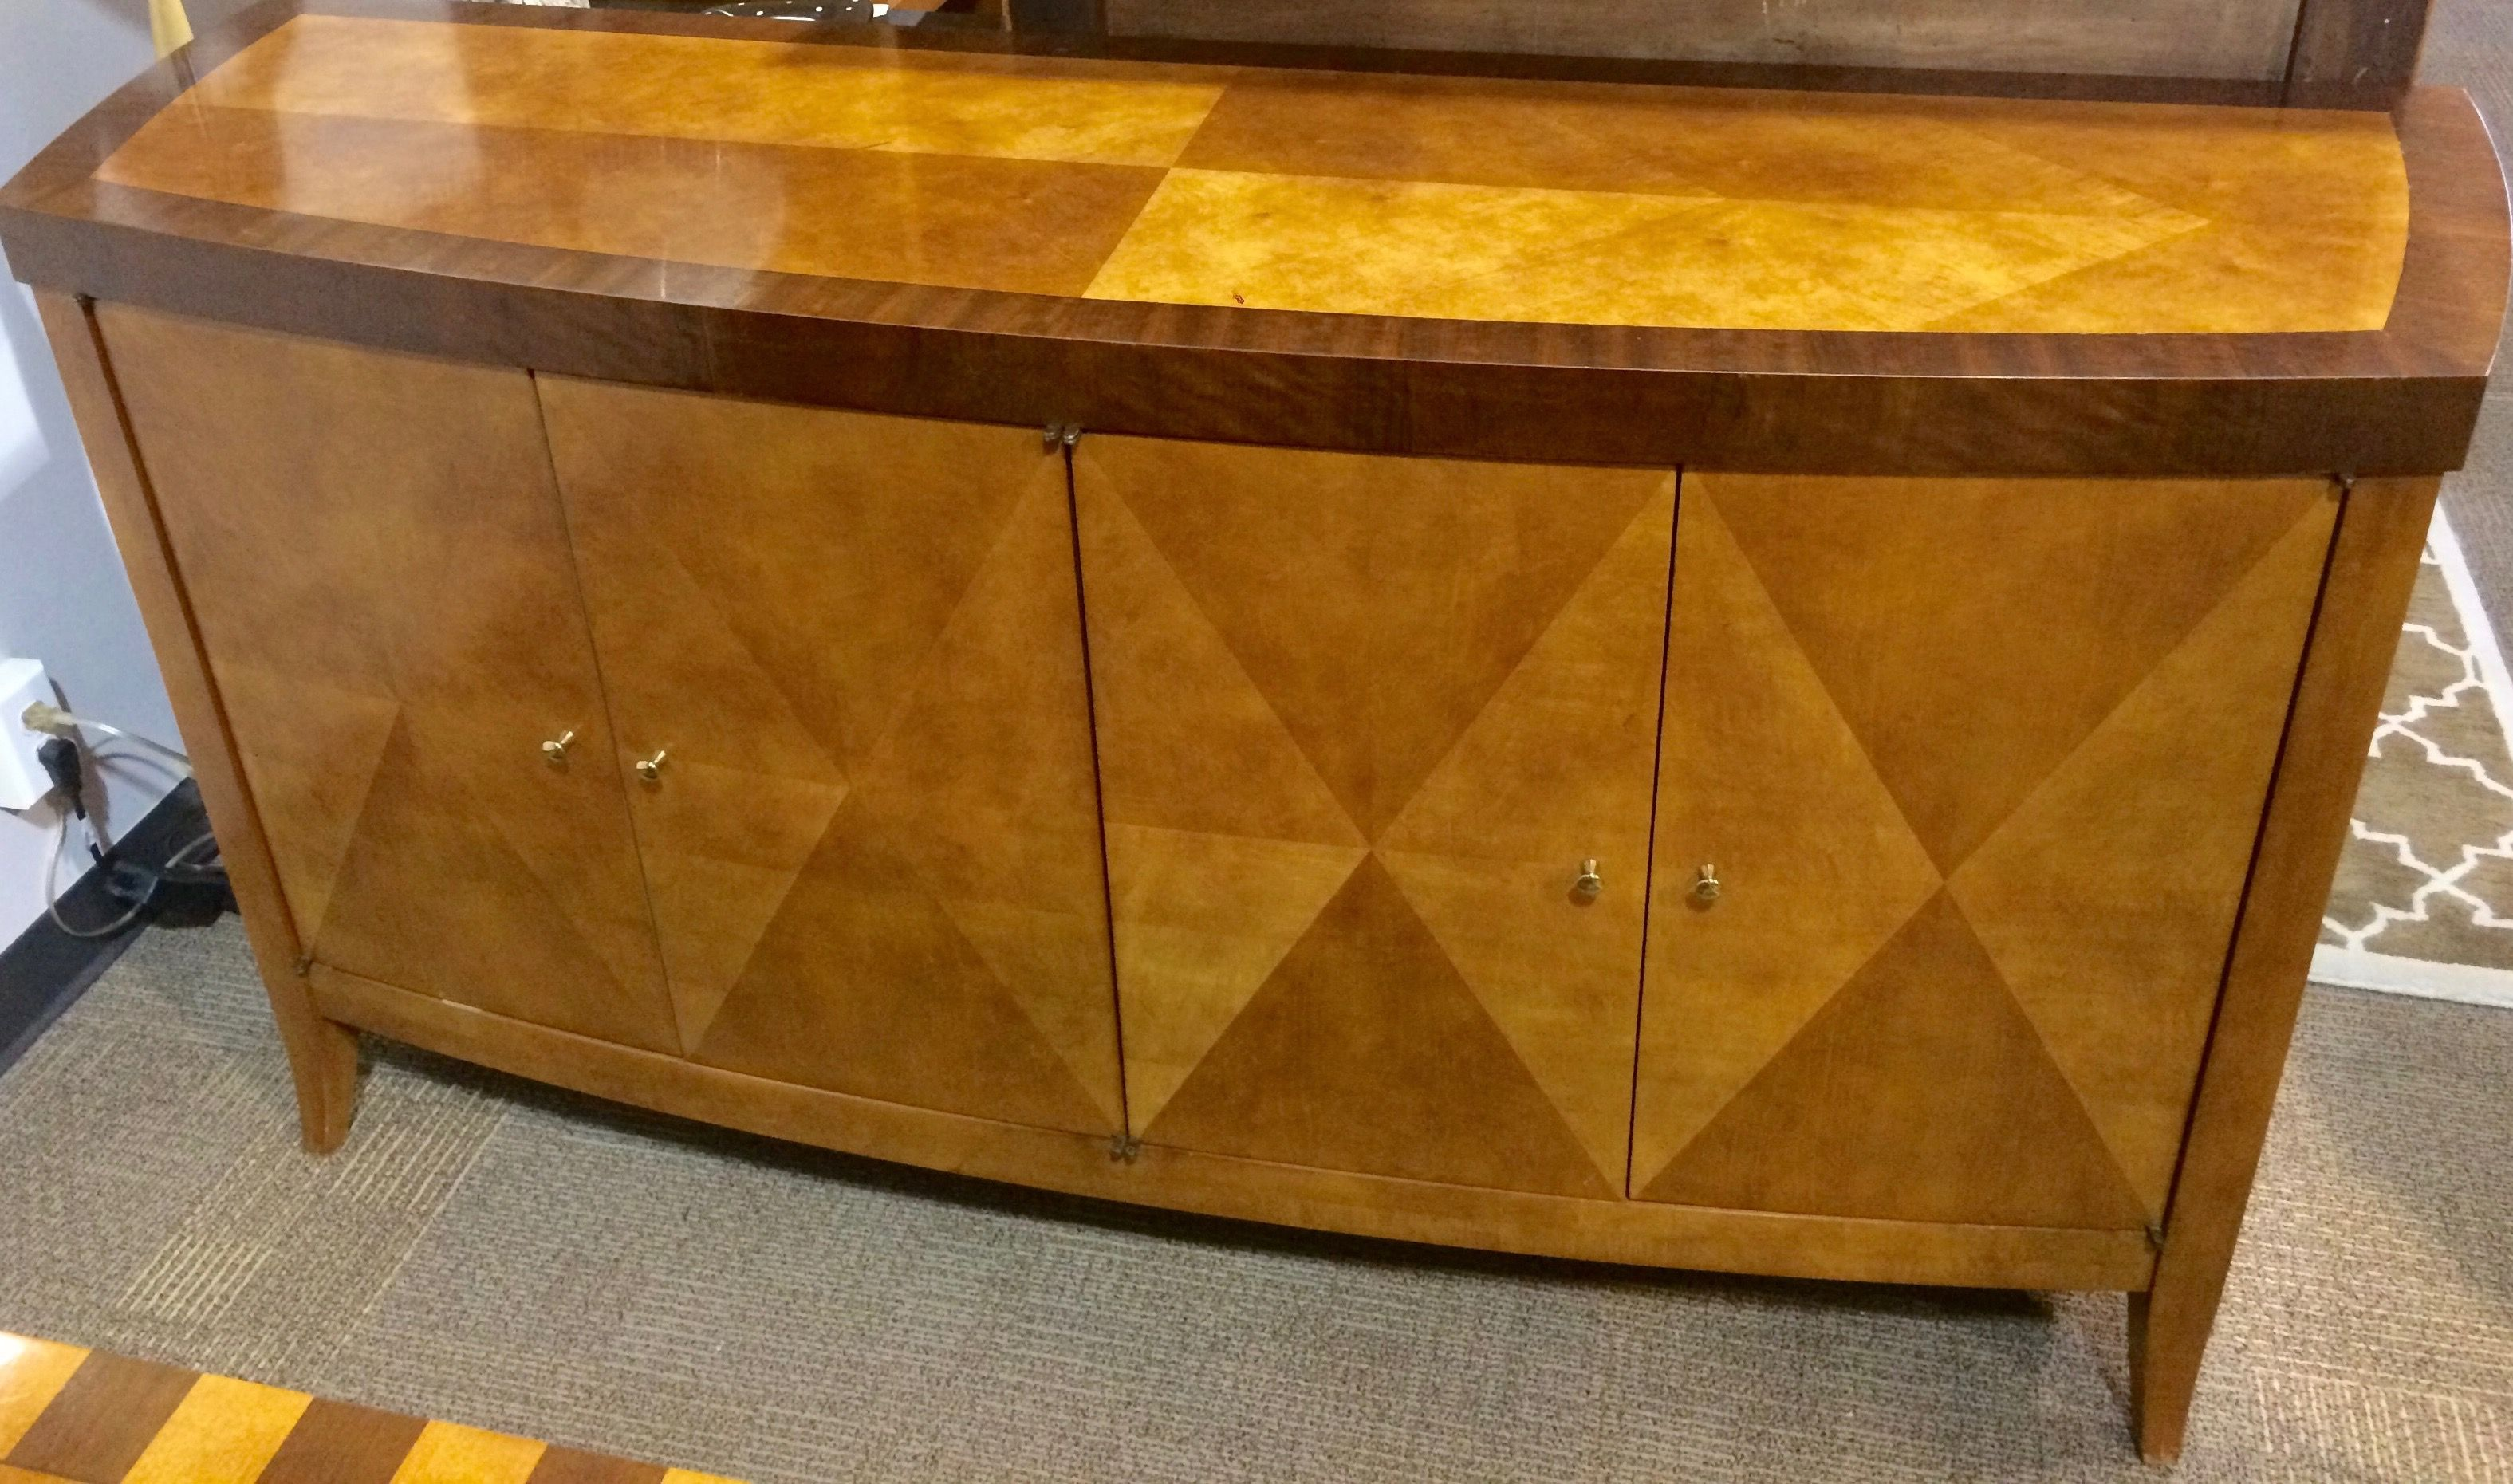 Hickory White buffet for sale at The Refind Room for  799 00. Hickory White buffet for sale at The Refind Room for  799 00   The